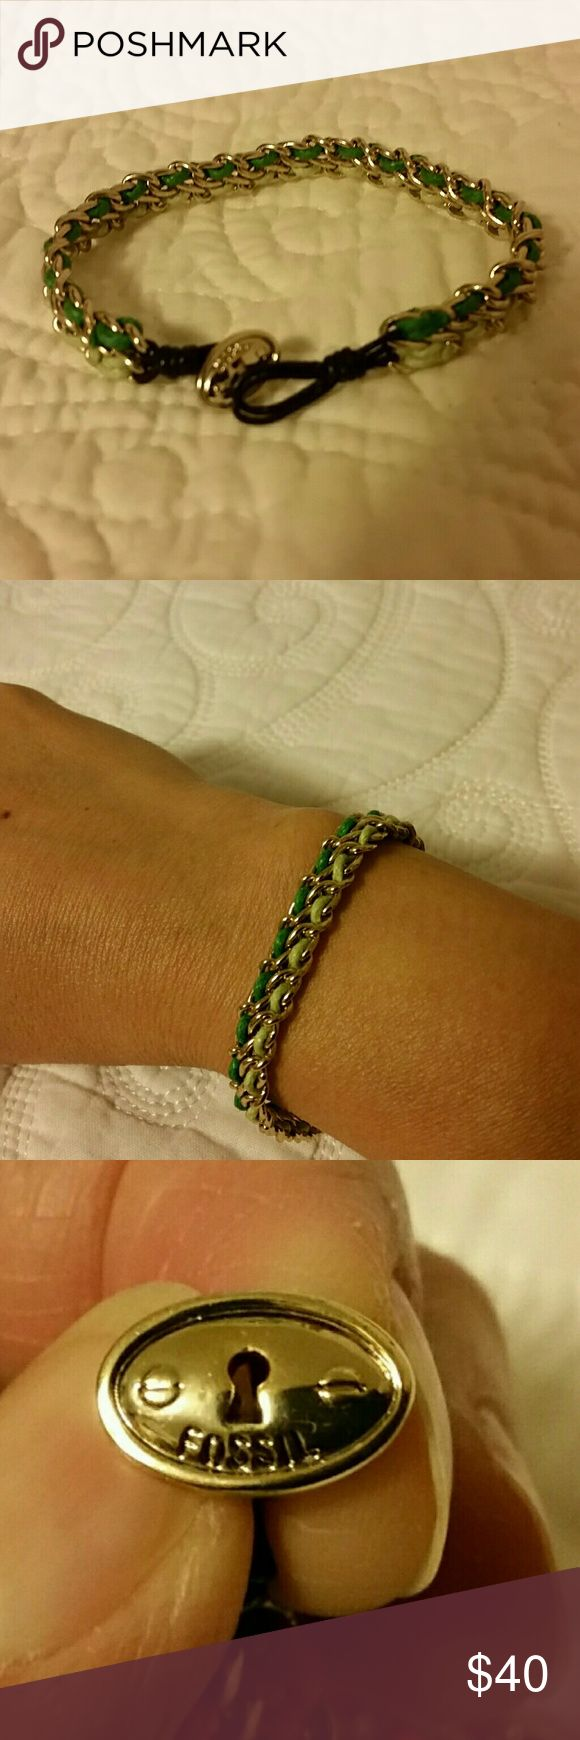 """JUST IN""  Fossil Bracelet NWOT  Never worn except to model  Comes with the dust bag 9/6/17 Fossil Jewelry Bracelets"